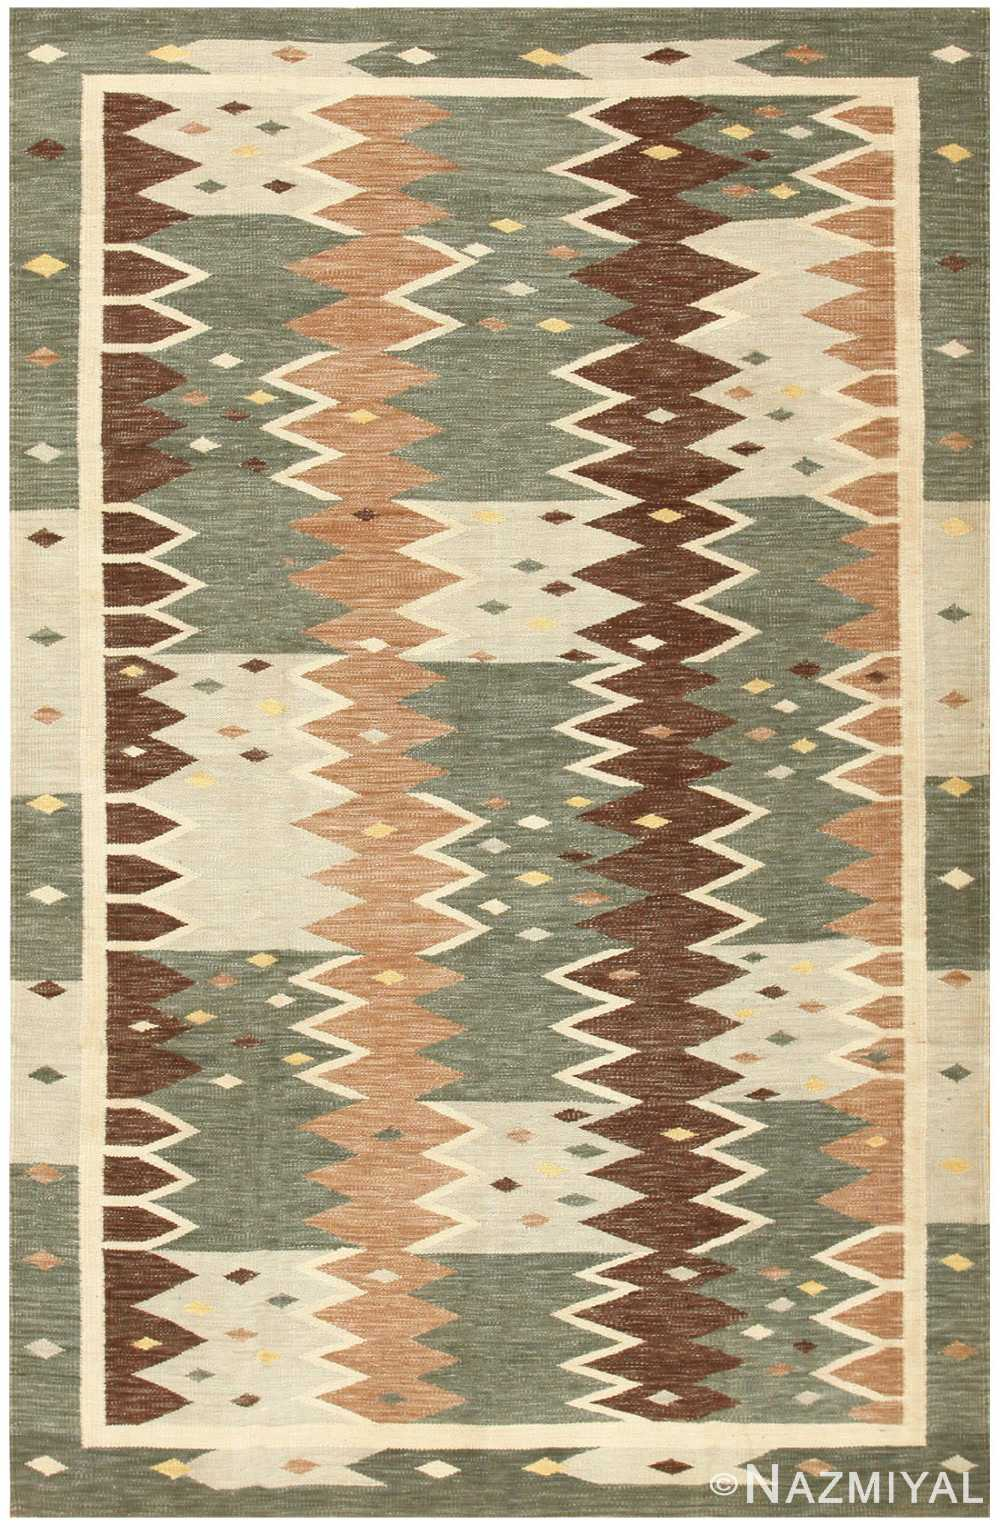 Swedish Inspired Kilim 48519 Detail/Large View